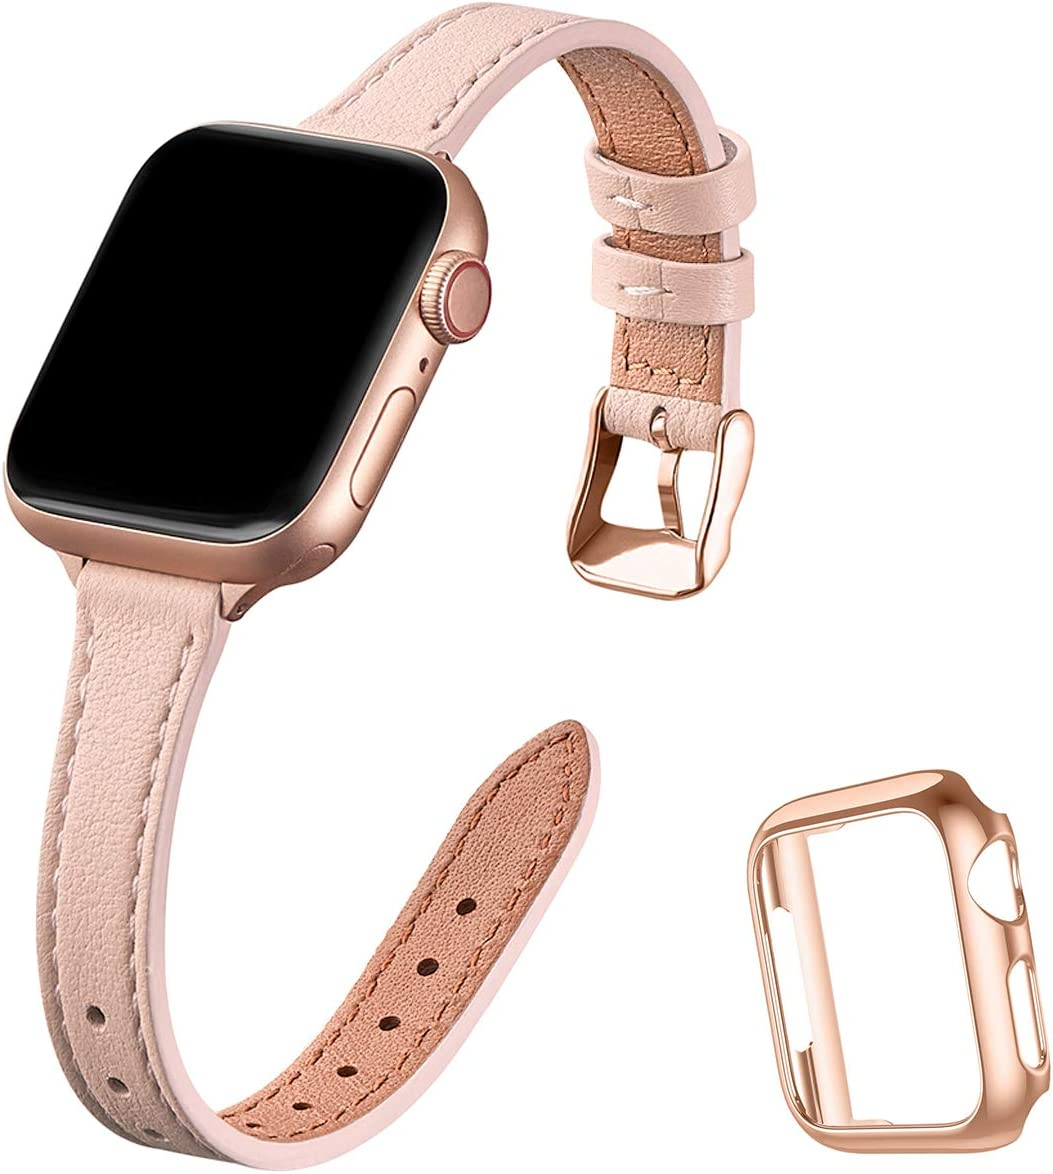 STIROLL Slim Leather Bands Compatible with Apple Watch Band 38mm 40mm 42mm 44mm, Top Grain Leather Watch Thin Wristband for iWatch SE Series 6/5/4/3/2/1 (Pale pink with Rose Gold, 42mm/44mm)